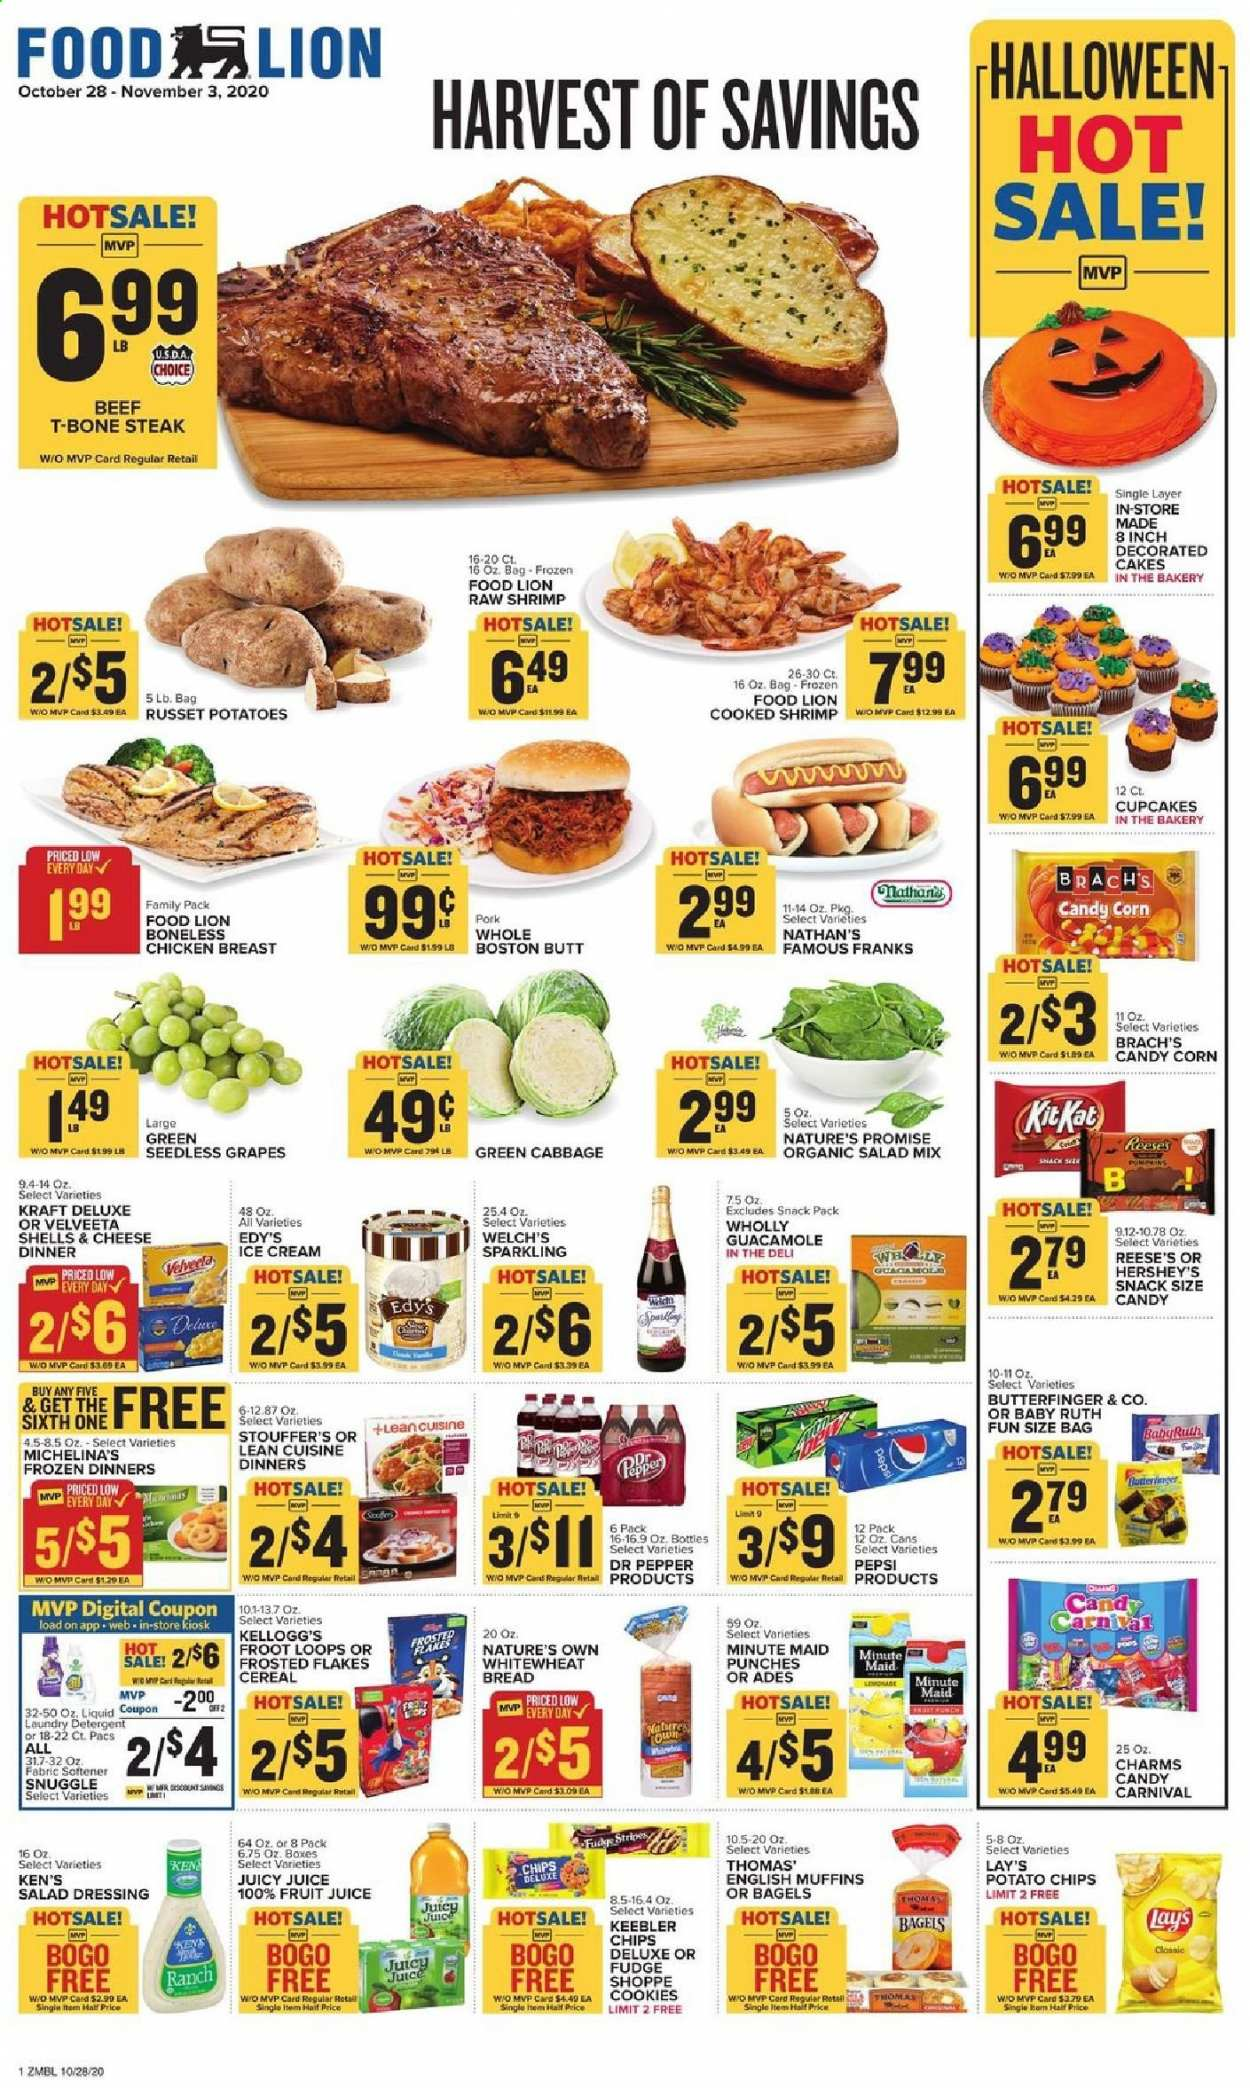 Food Lion Flyer - 10.28.2020 - 11.03.2020 - Sales products - seedless grapes, bread, Nature's Promise, bagels, cupcake, muffin, shrimps, english muffins, Lean Cuisine, Welch's, Kraft®, guacamole, charm, ice cream, Reese's, Hershey's, corn, Stouffer's, cookies, Fudge, candy, Kellogg's, Keebler, Lay's, cereals, Frosted Flakes, salad dressing, dressing, Pepsi, juice, fruit juice, Dr. Pepper, chicken, chicken breasts, chicken meat, beef meat, t-bone steak, steak, detergent, Snuggle, fabric softener, laundry detergent, Nature's Own. Page 1.